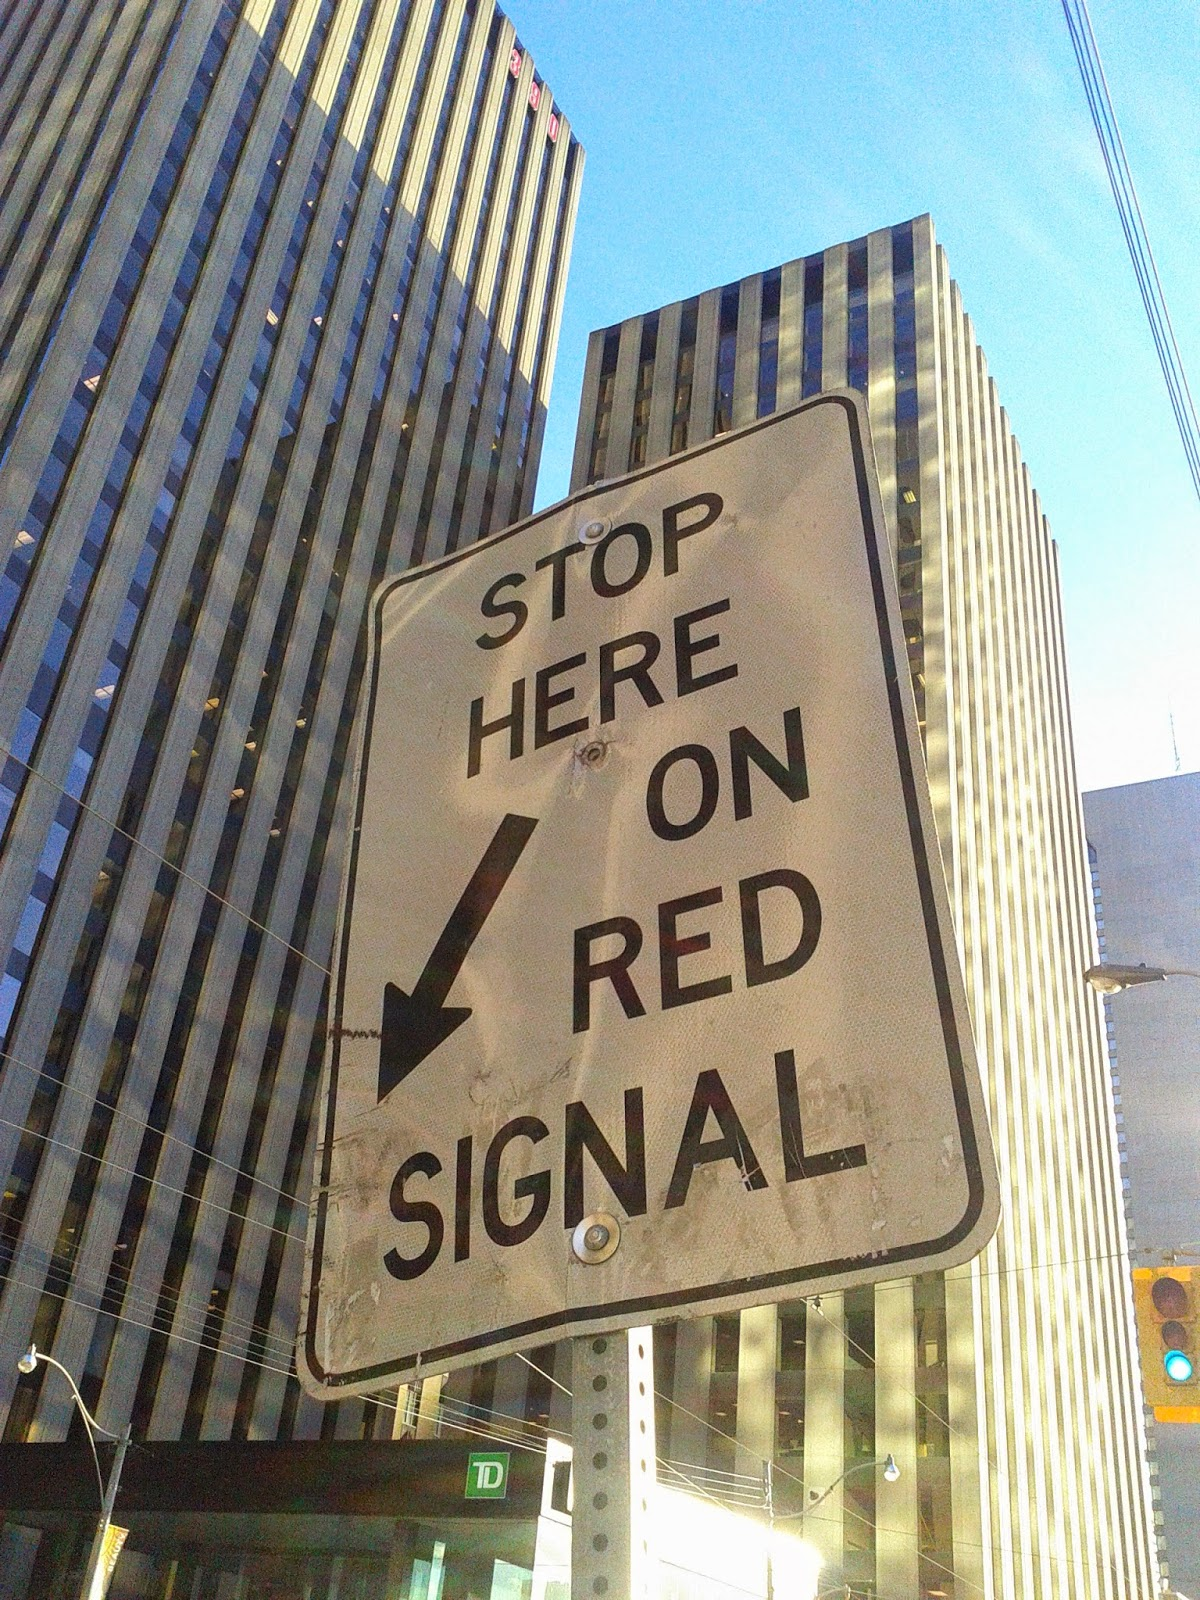 Stock photo: Stop here on red signal sign